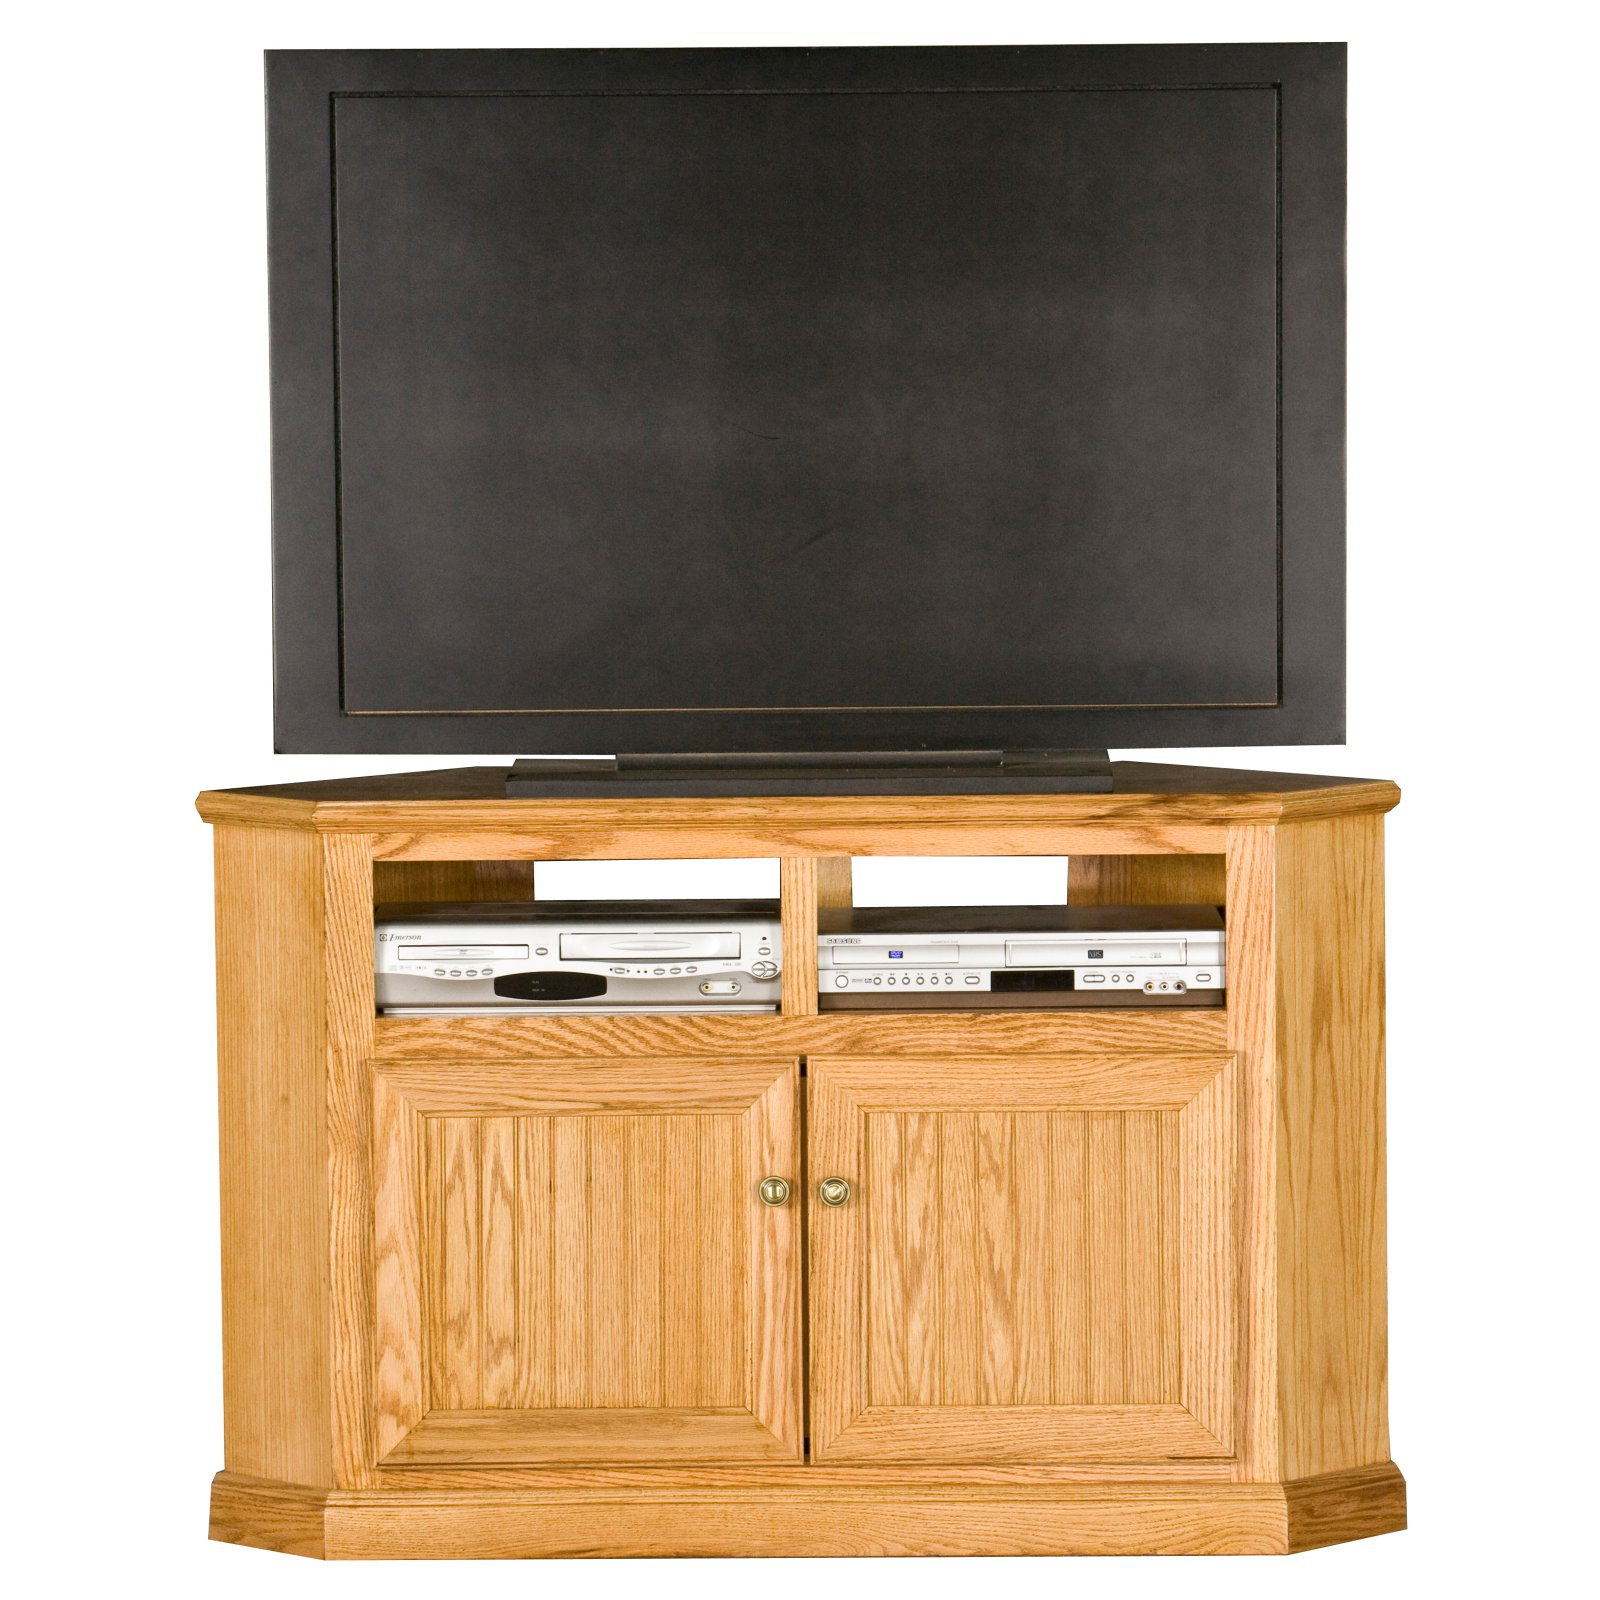 Eagle Furniture Heritage Customizable 50 in. Corner TV Stand